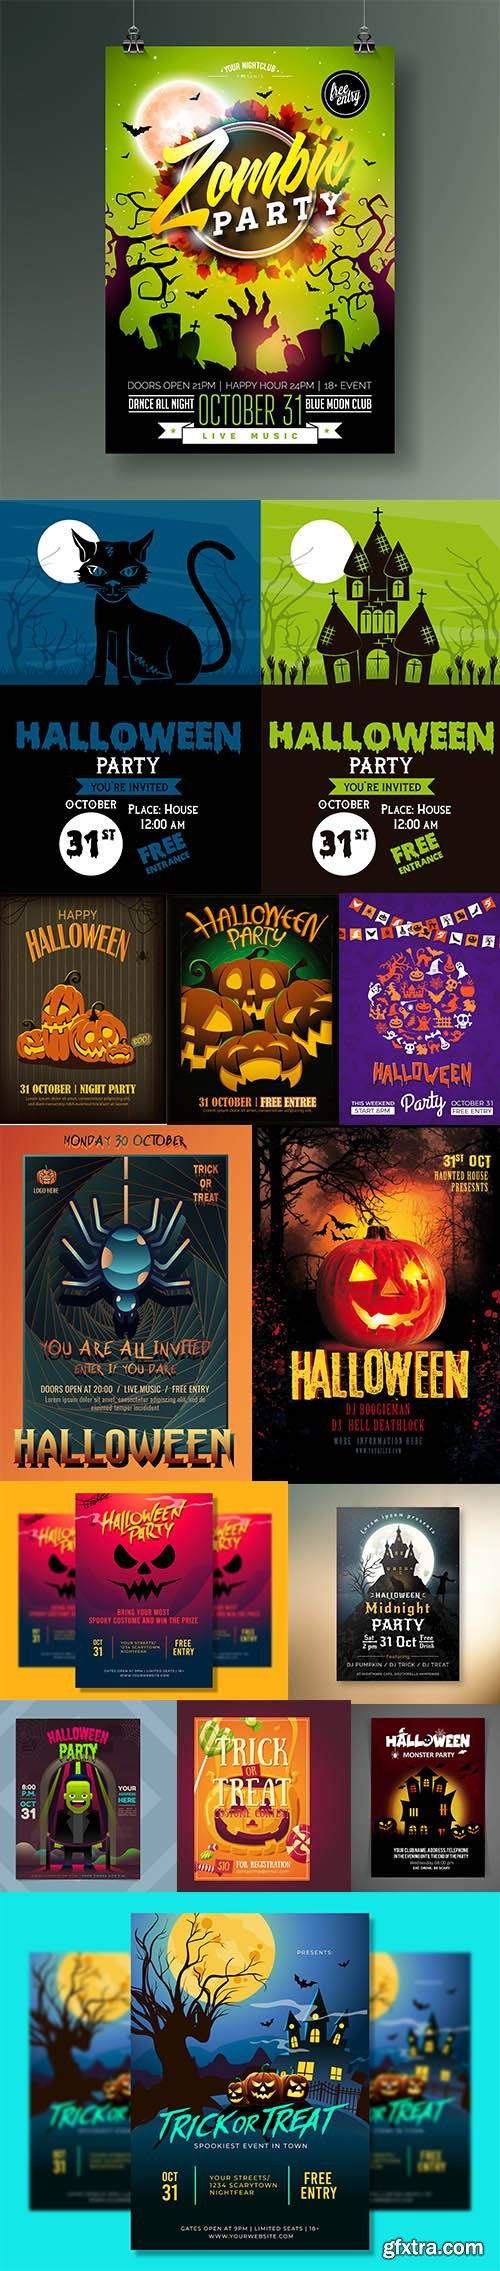 Halloween Party Flyer Template Set